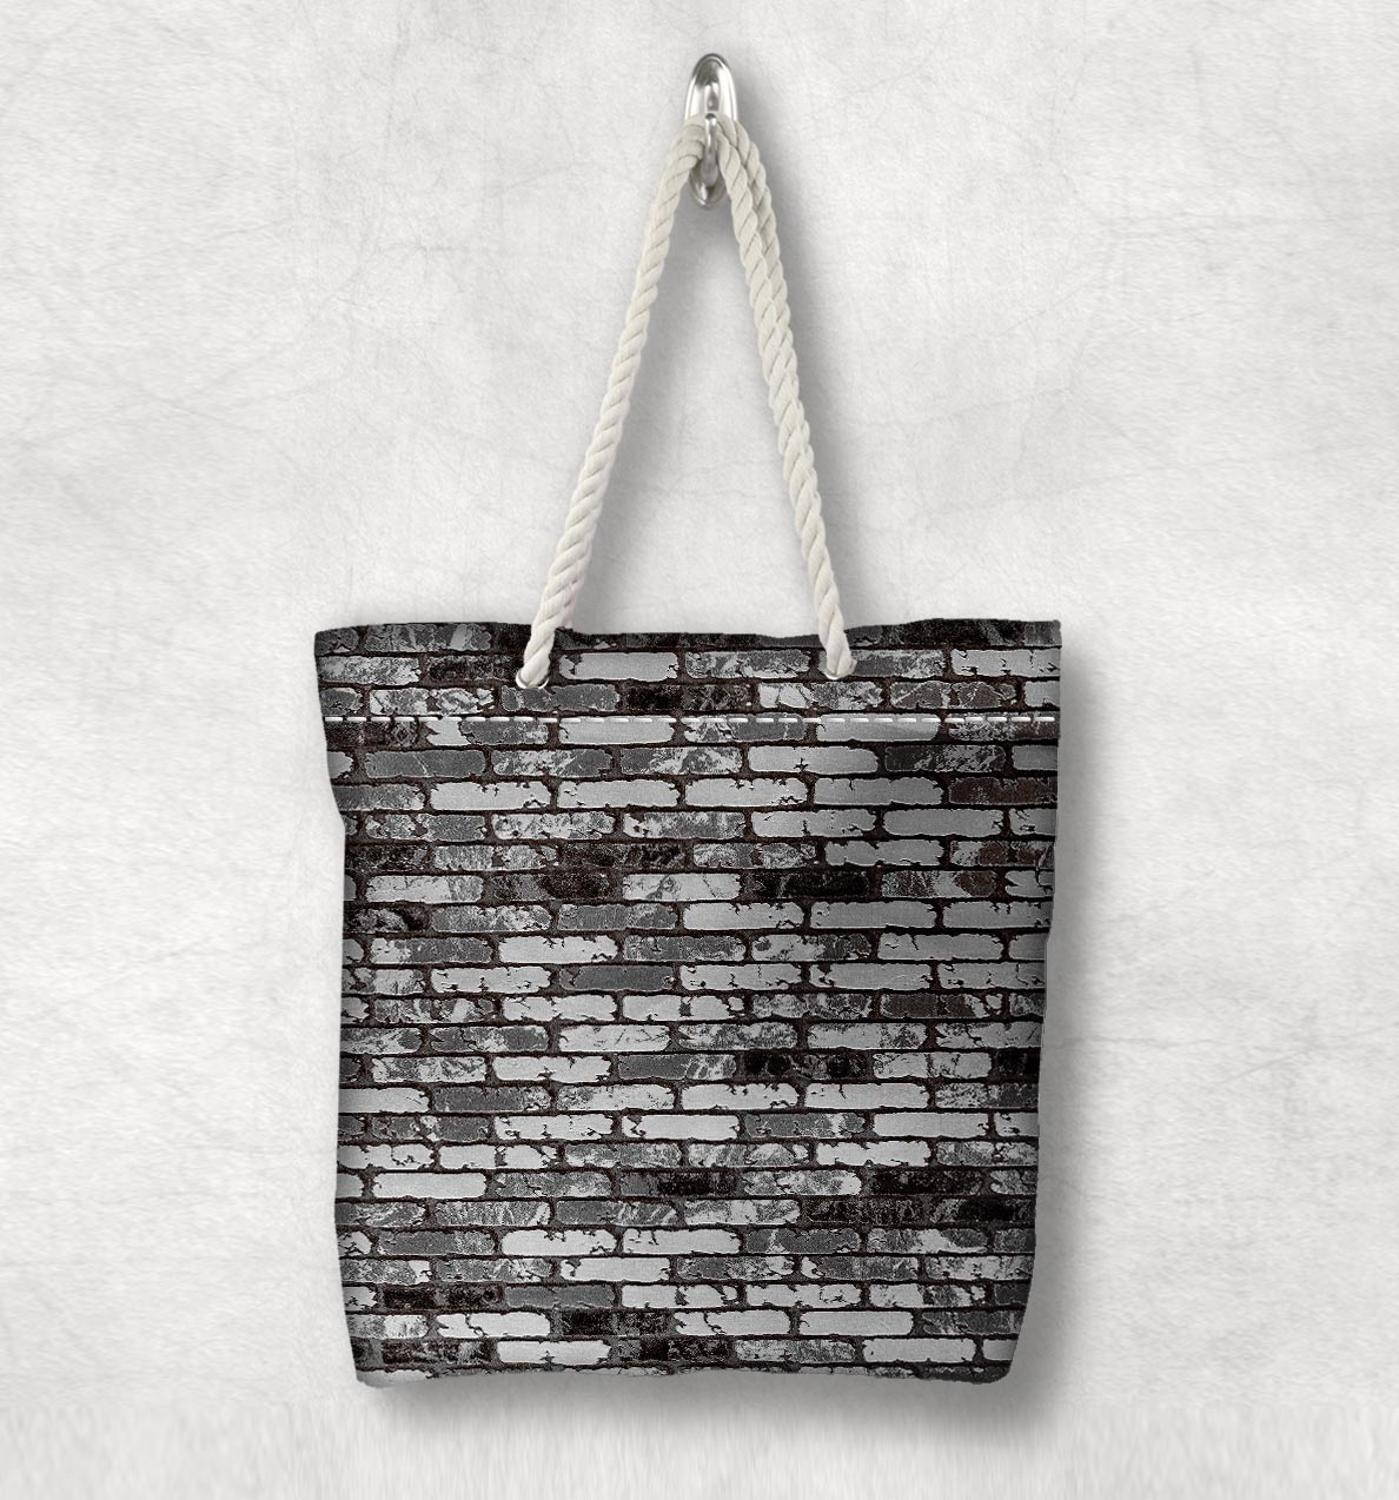 Else Black Gray Brick Wall Stones New Fashion White Rope Handle Canvas Bag Cotton Canvas Zippered Tote Bag Shoulder Bag